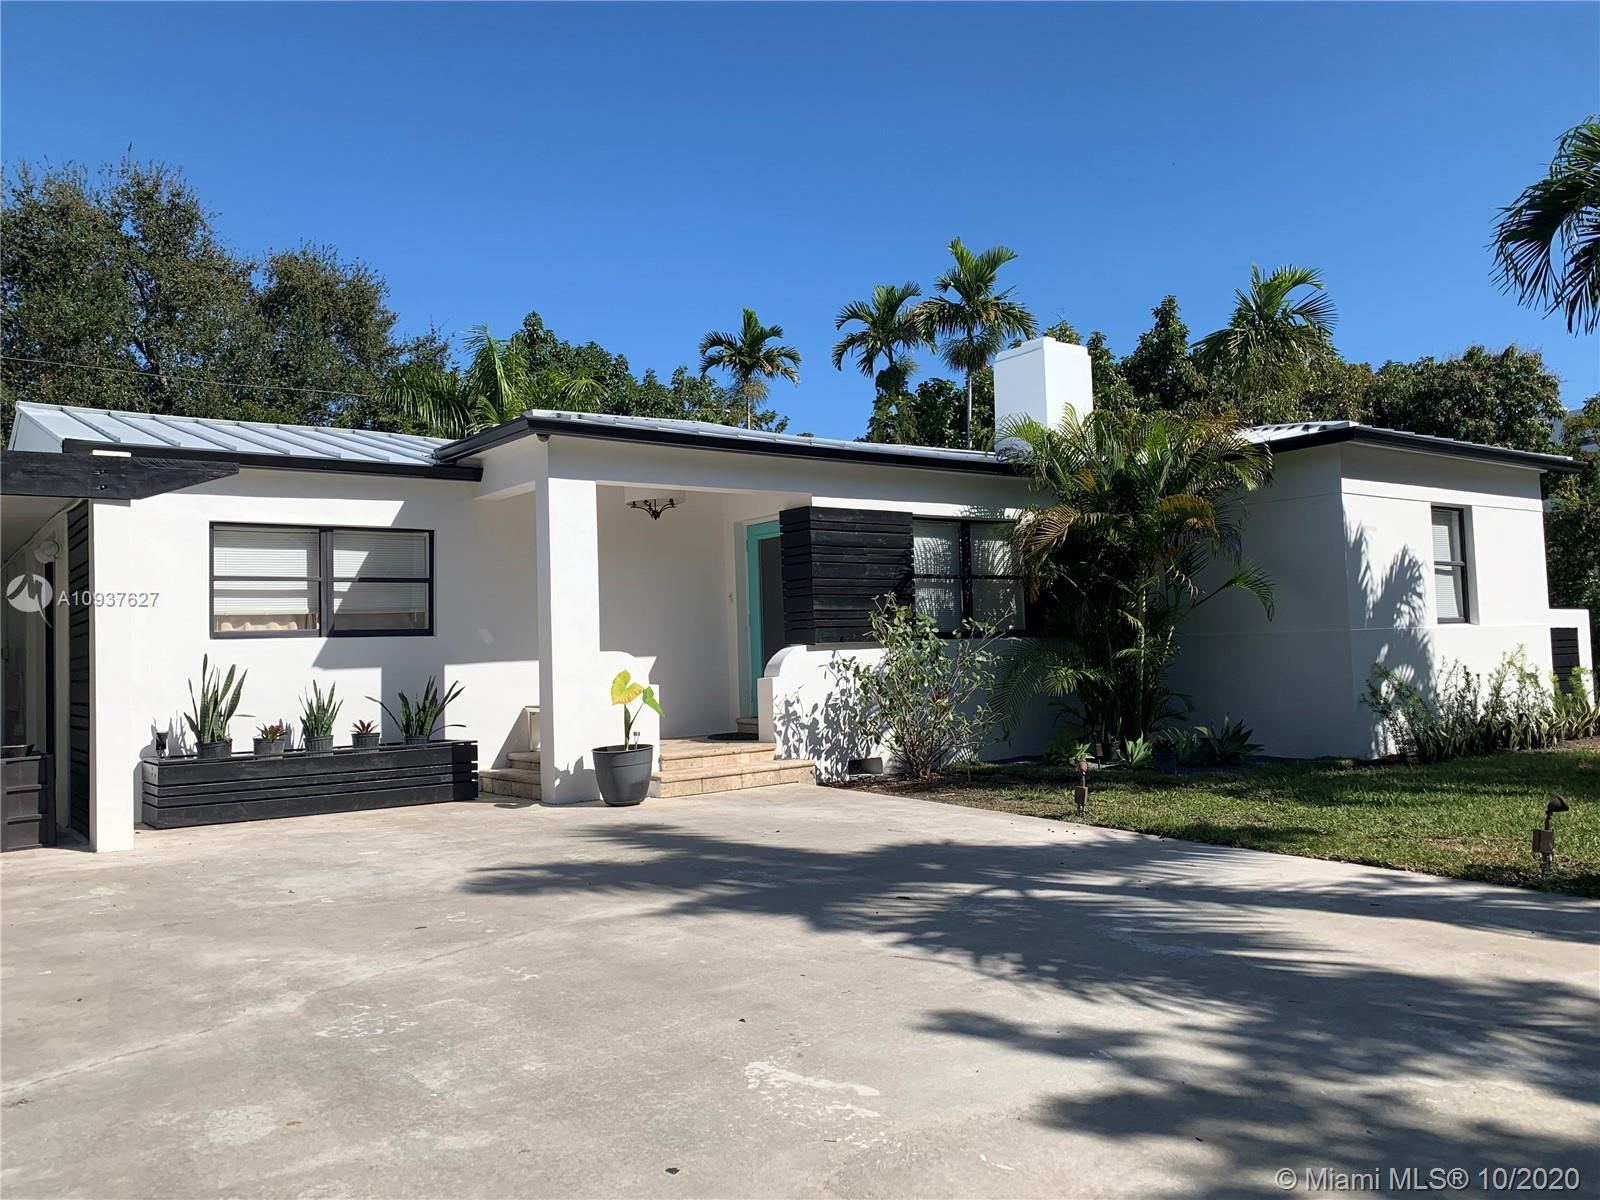 Details for 211 46th St, Miami, FL 33137